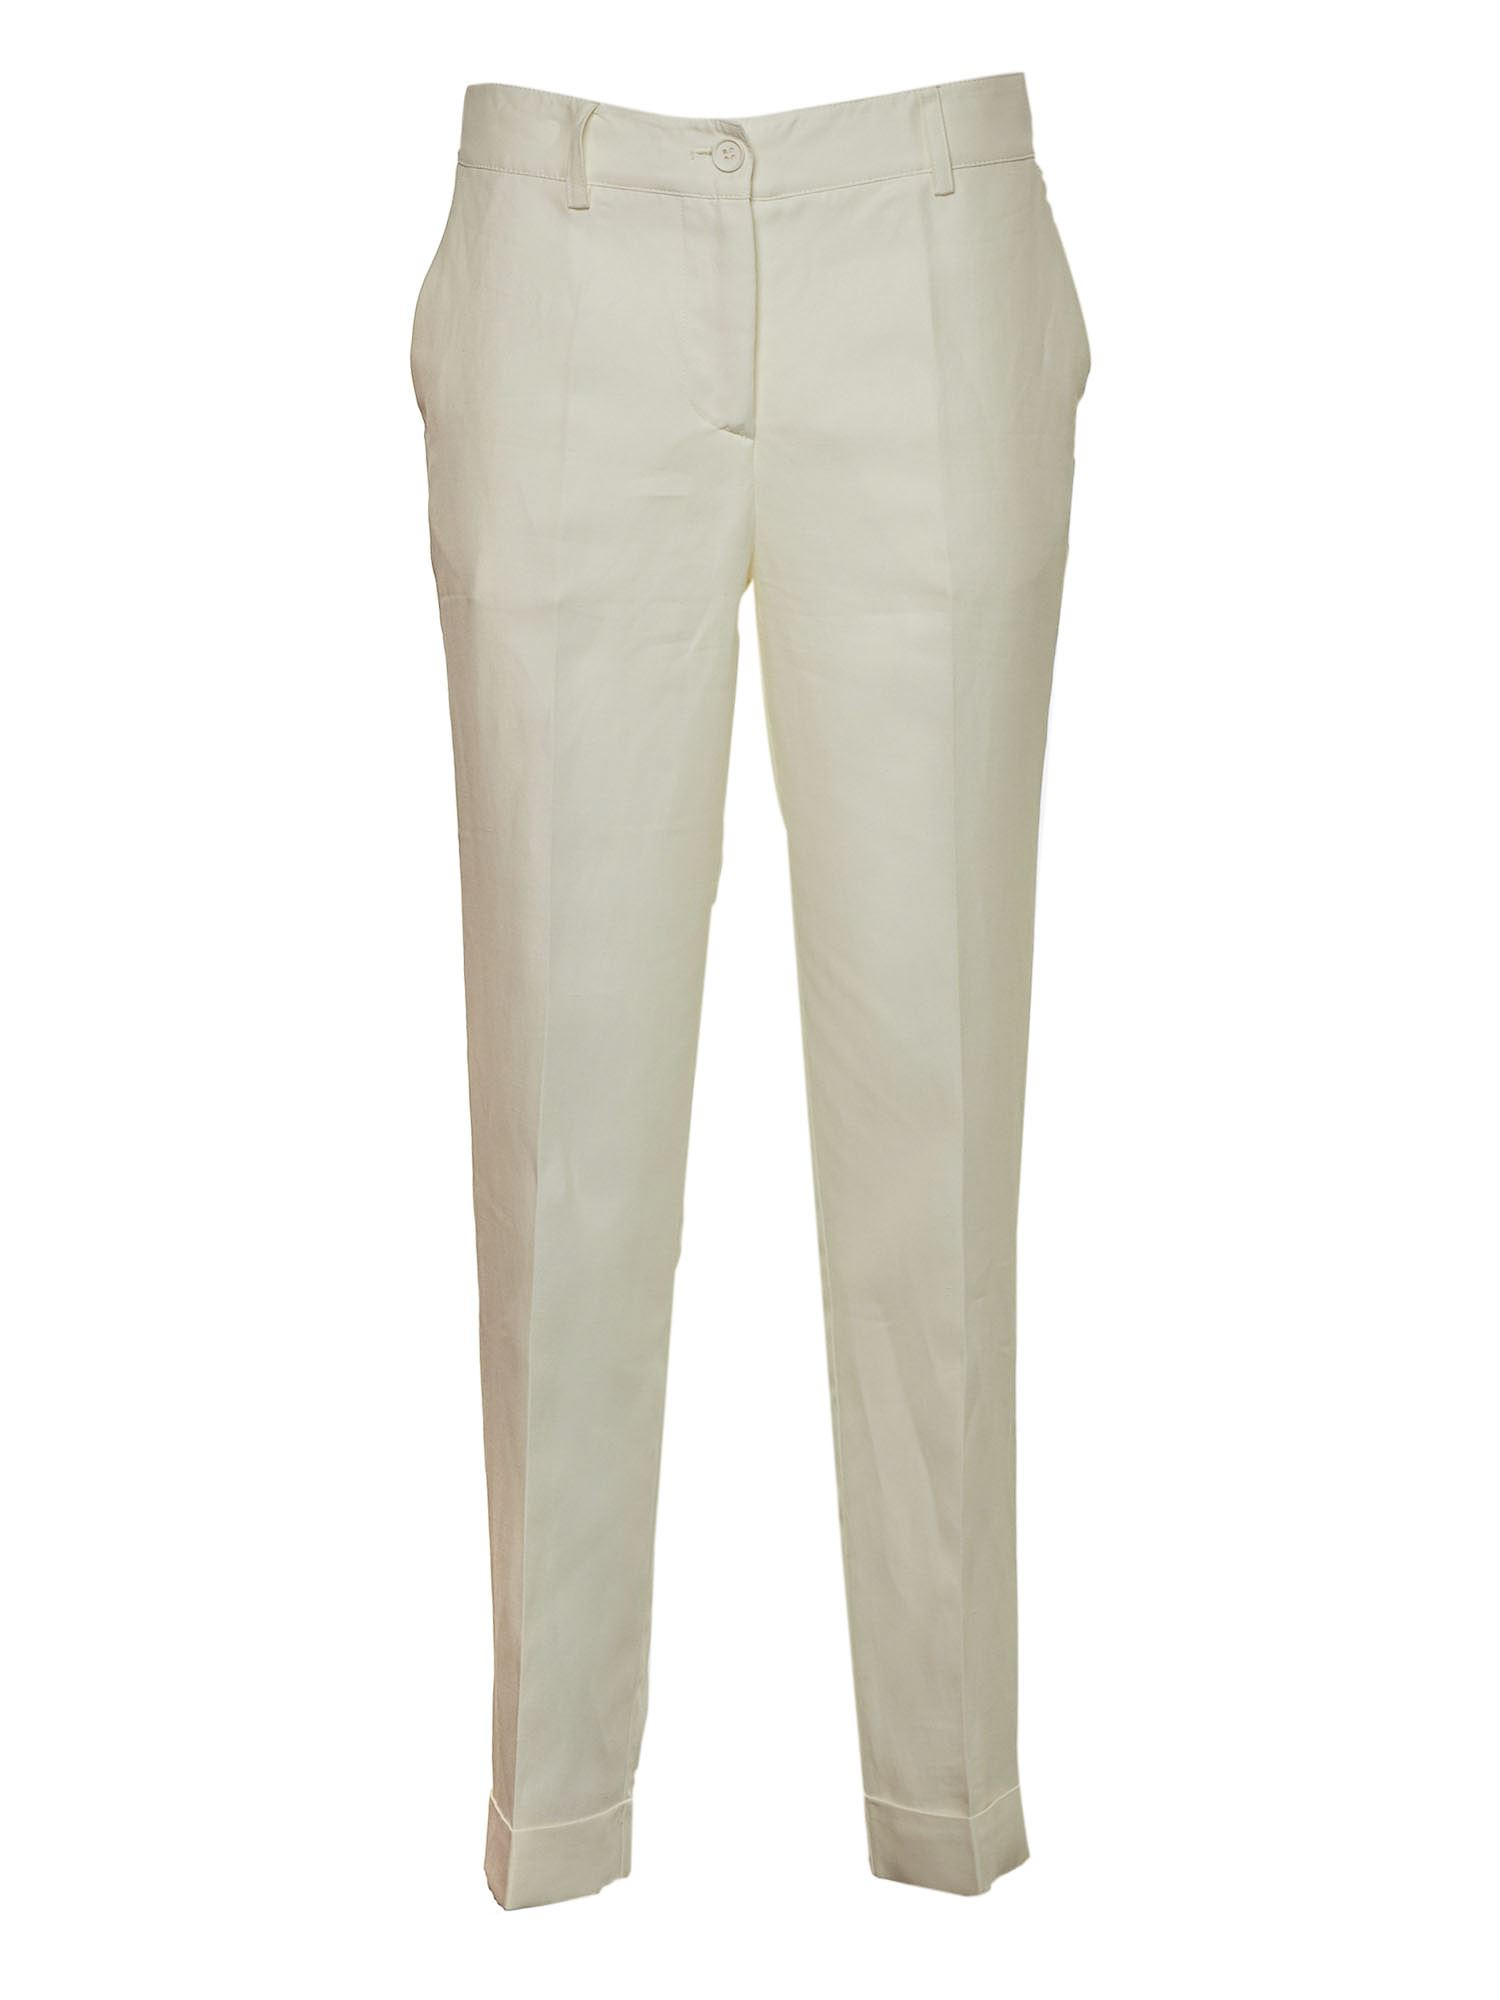 P.a.r.o.s.h. SLIM TROUSERS IN CREAM COLOR